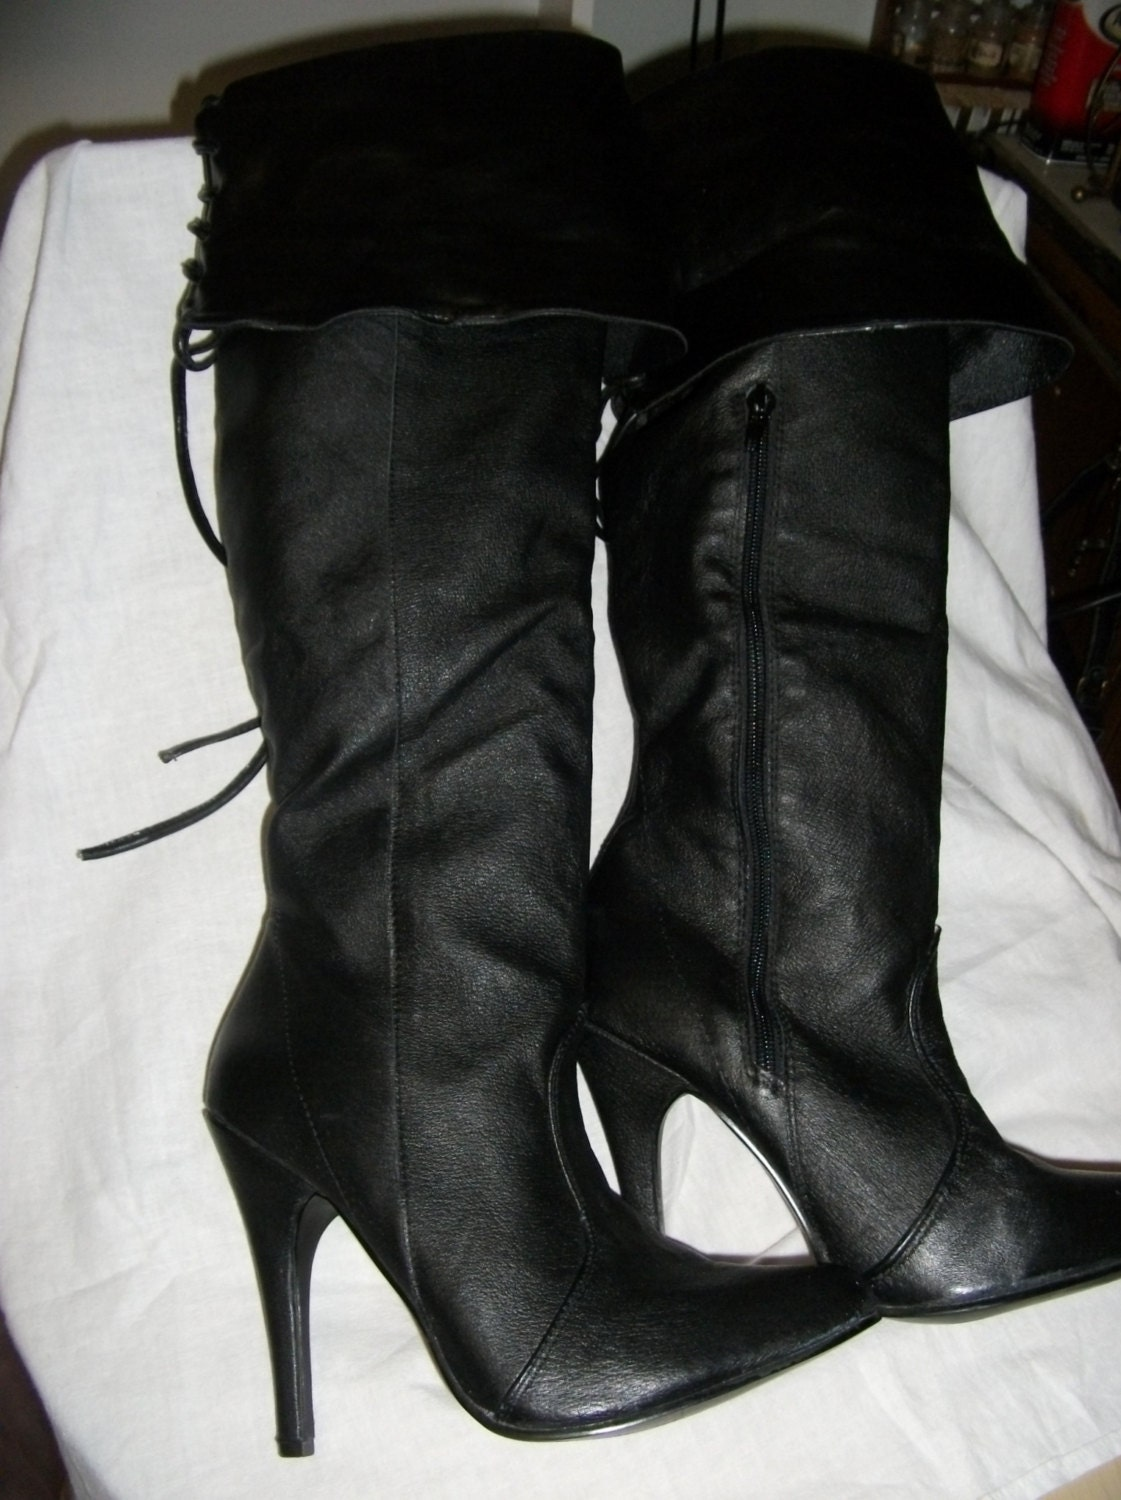 vintage thigh high pirate boots from ellie 4 1 2